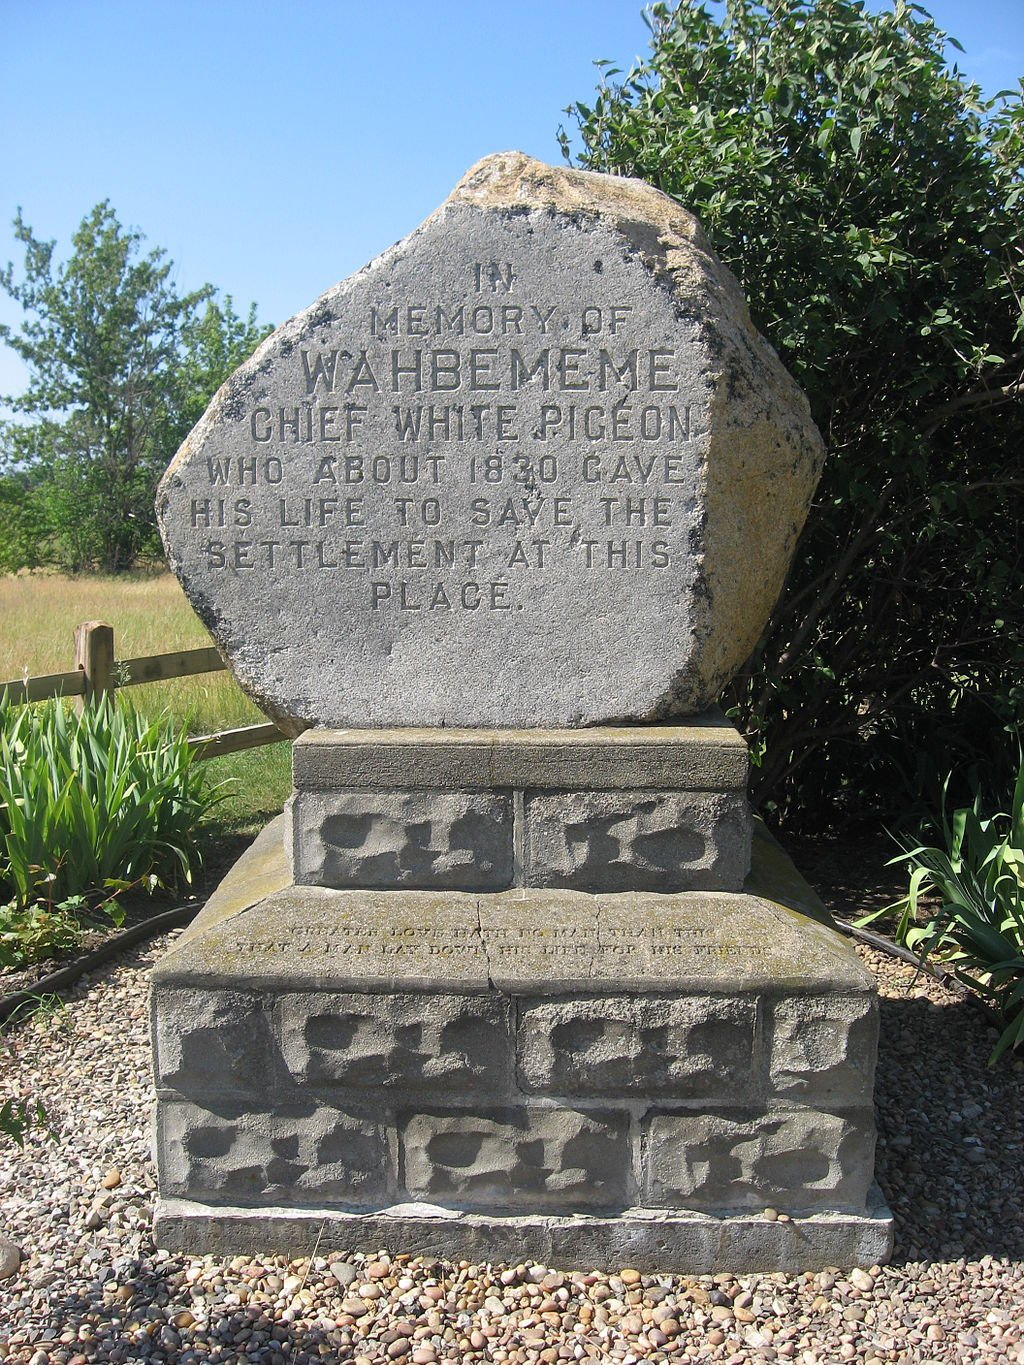 The monument commemorating the story of Wahbememe.